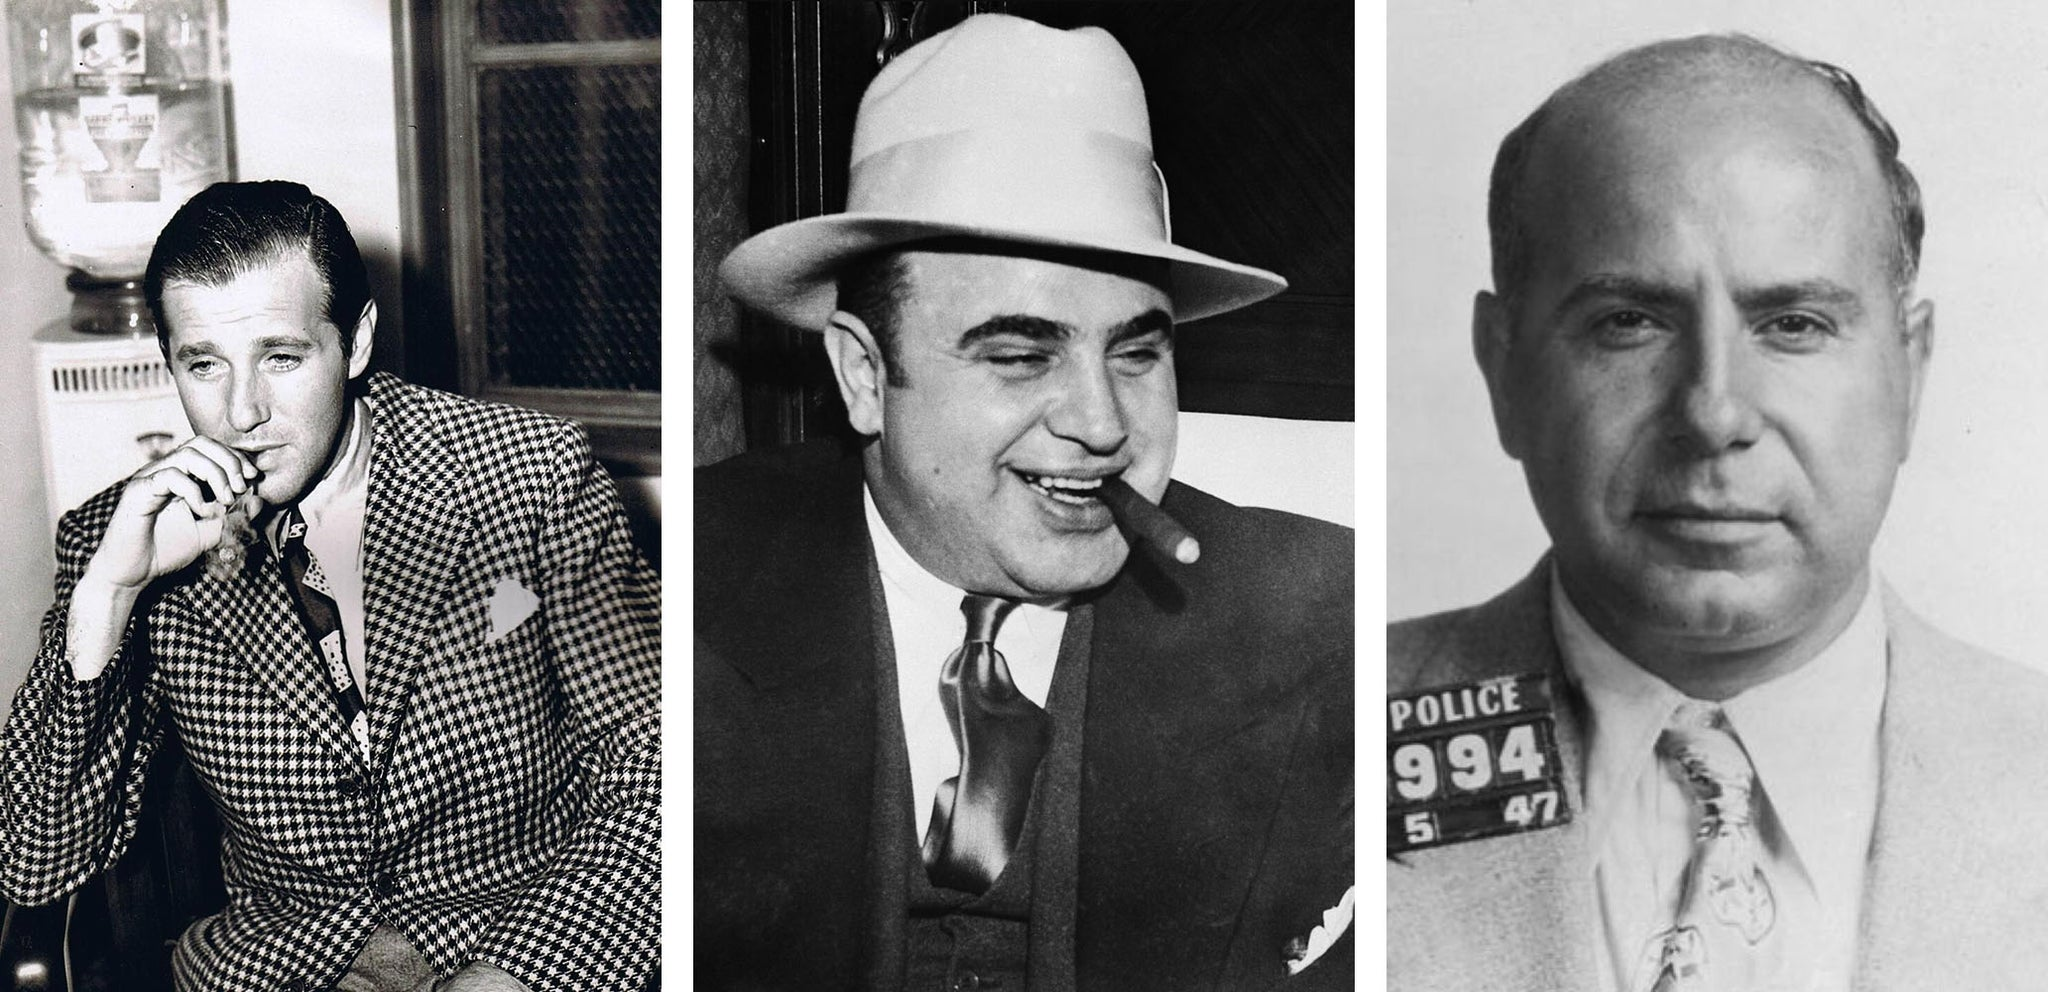 Cigars And Ethos: The Myth Of The Bad Guy